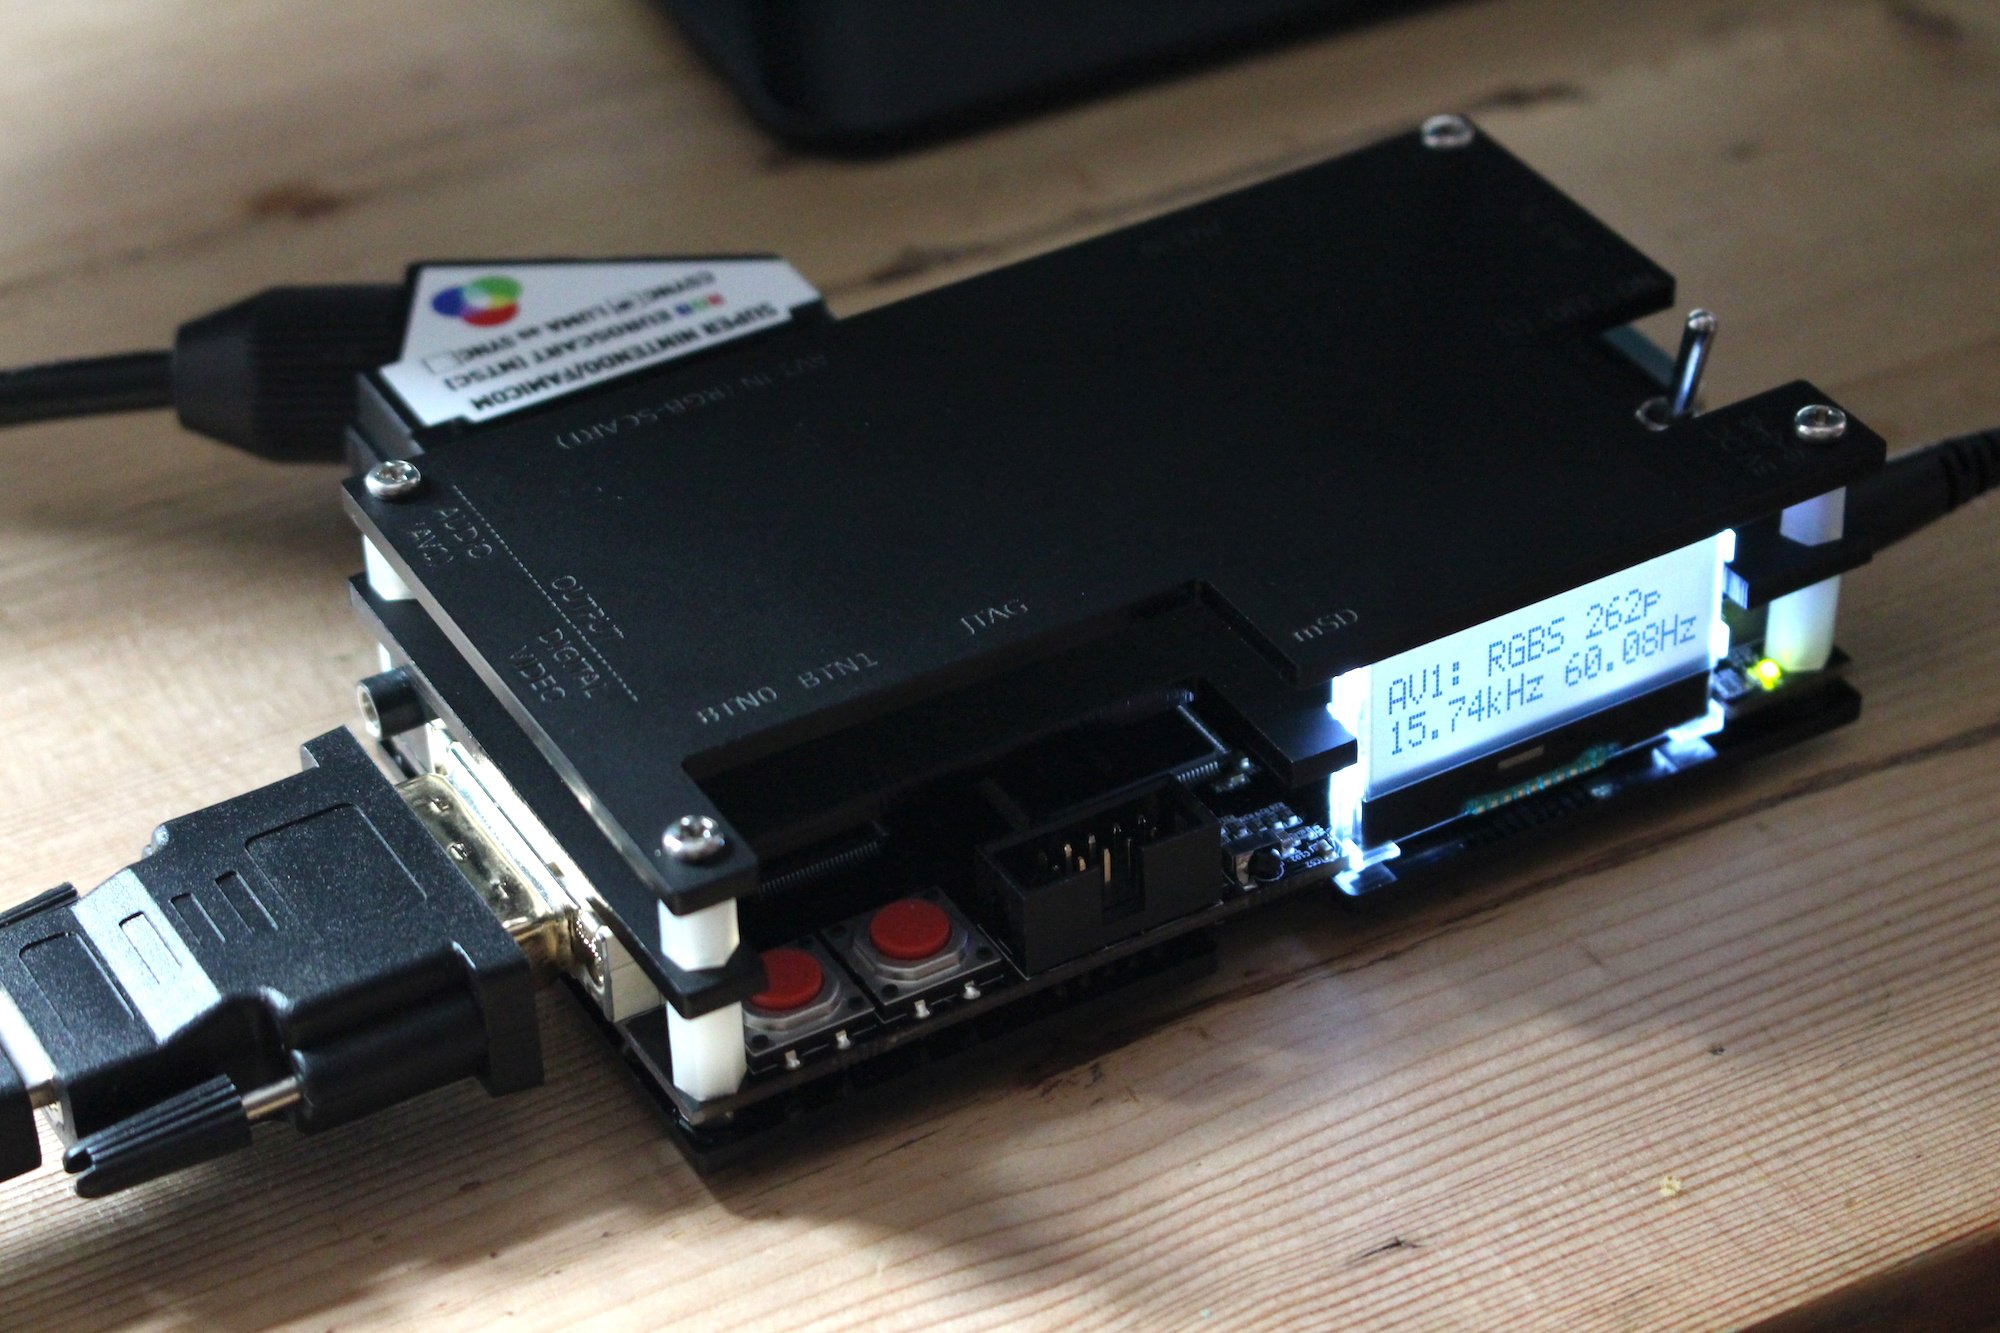 Hardware Review: The Open Source Scan Converter Is Every Retro